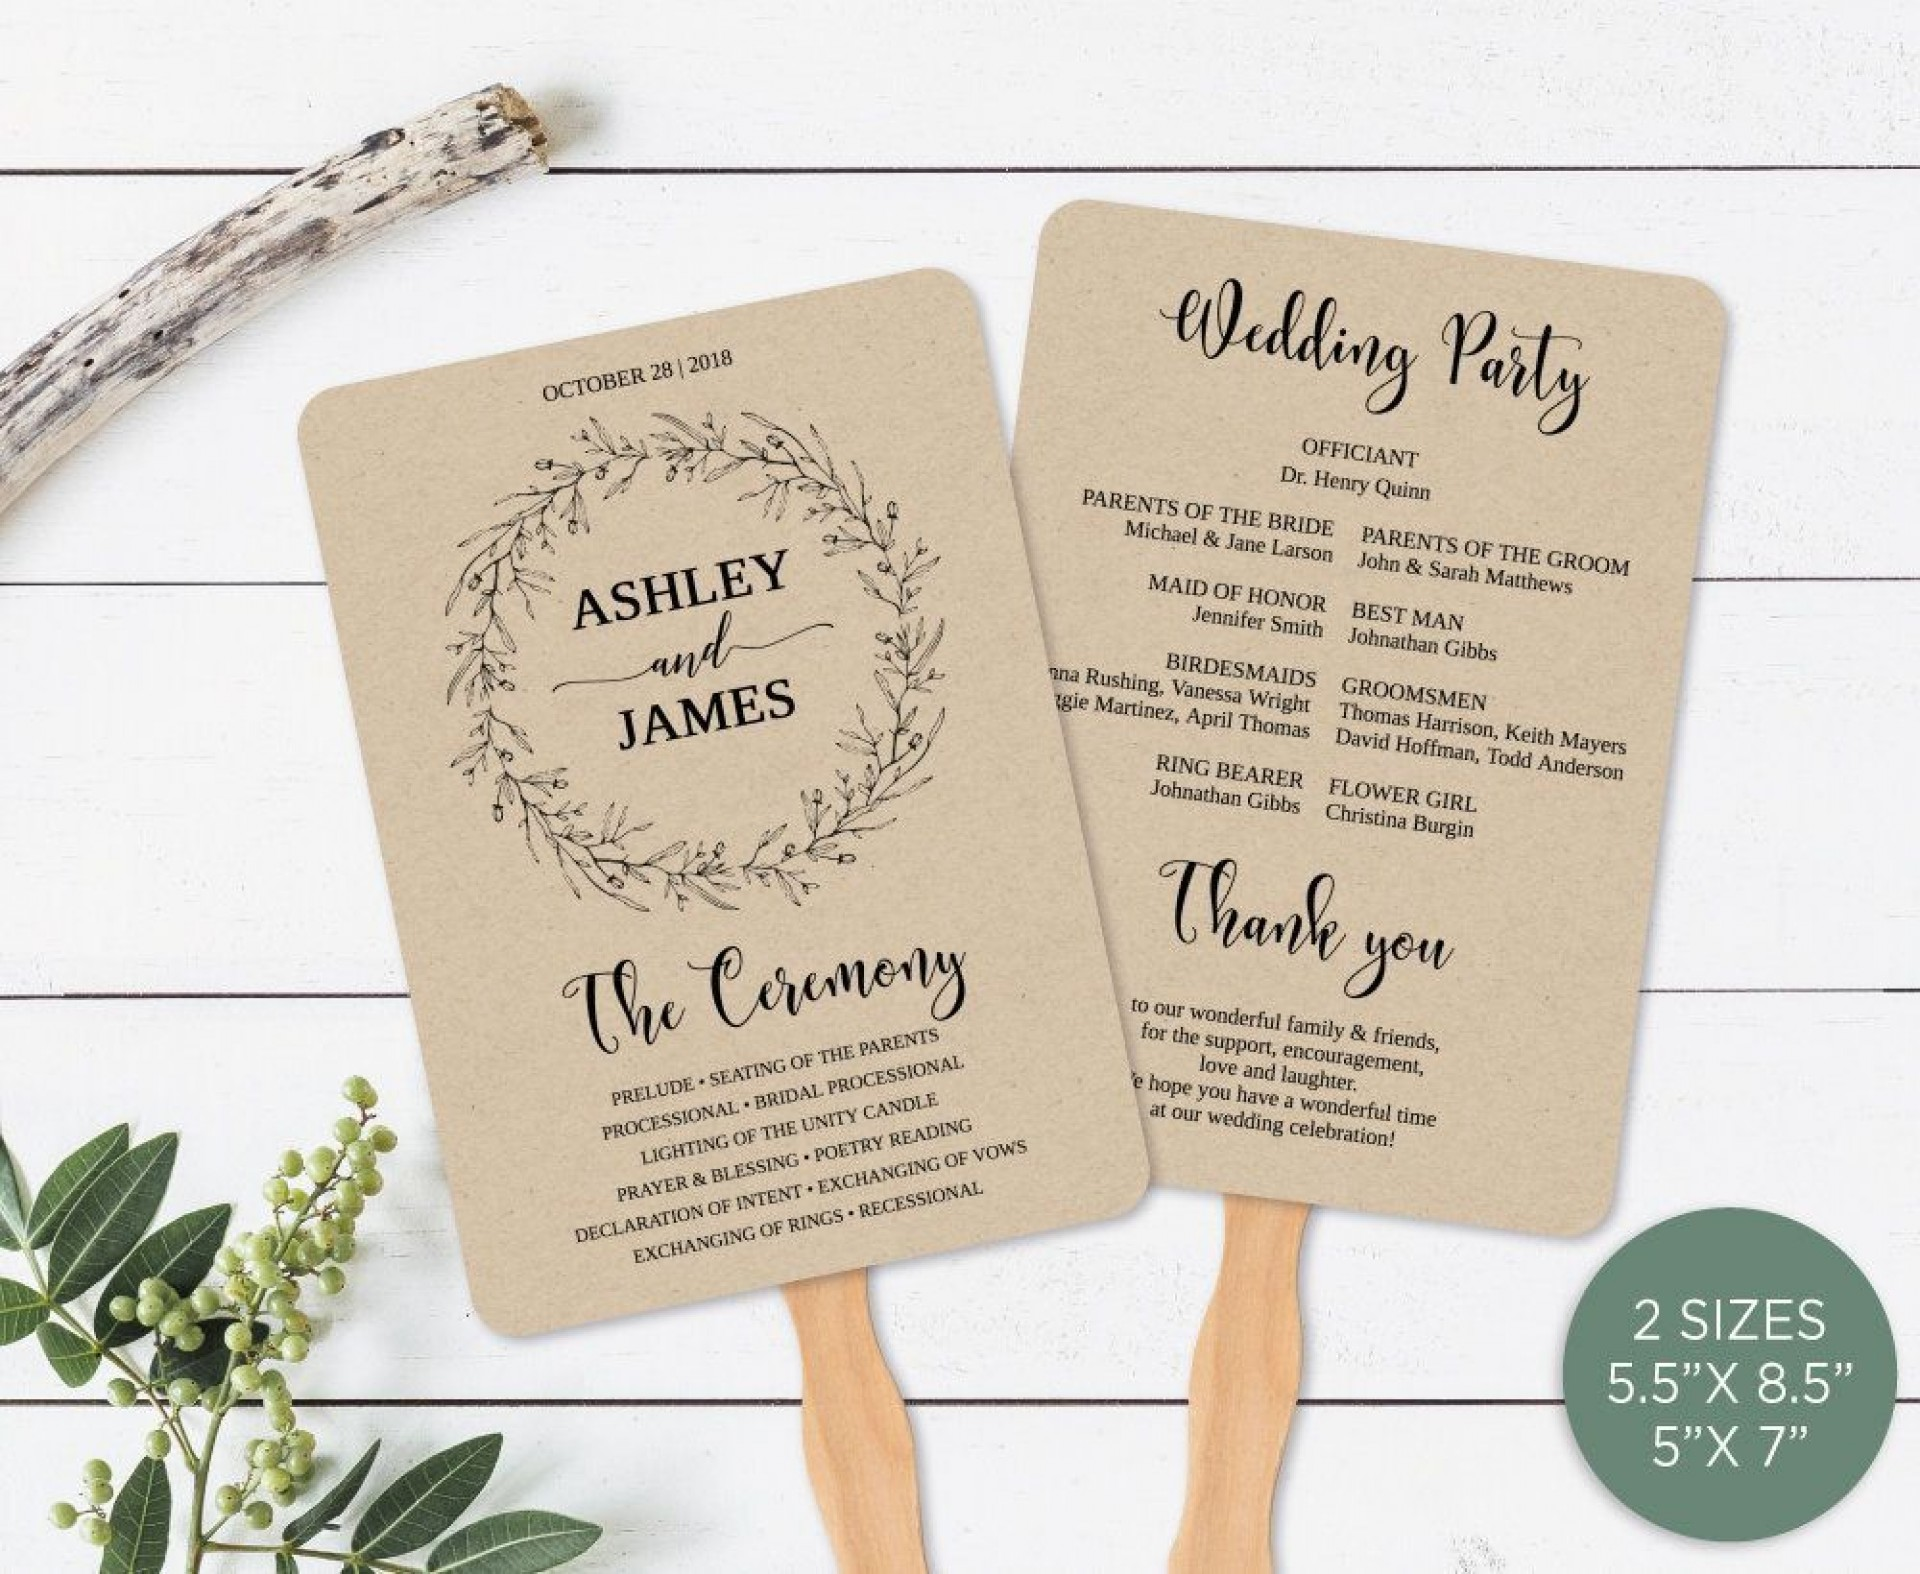 005 Beautiful Wedding Order Of Service Template Pdf High Resolution 1920